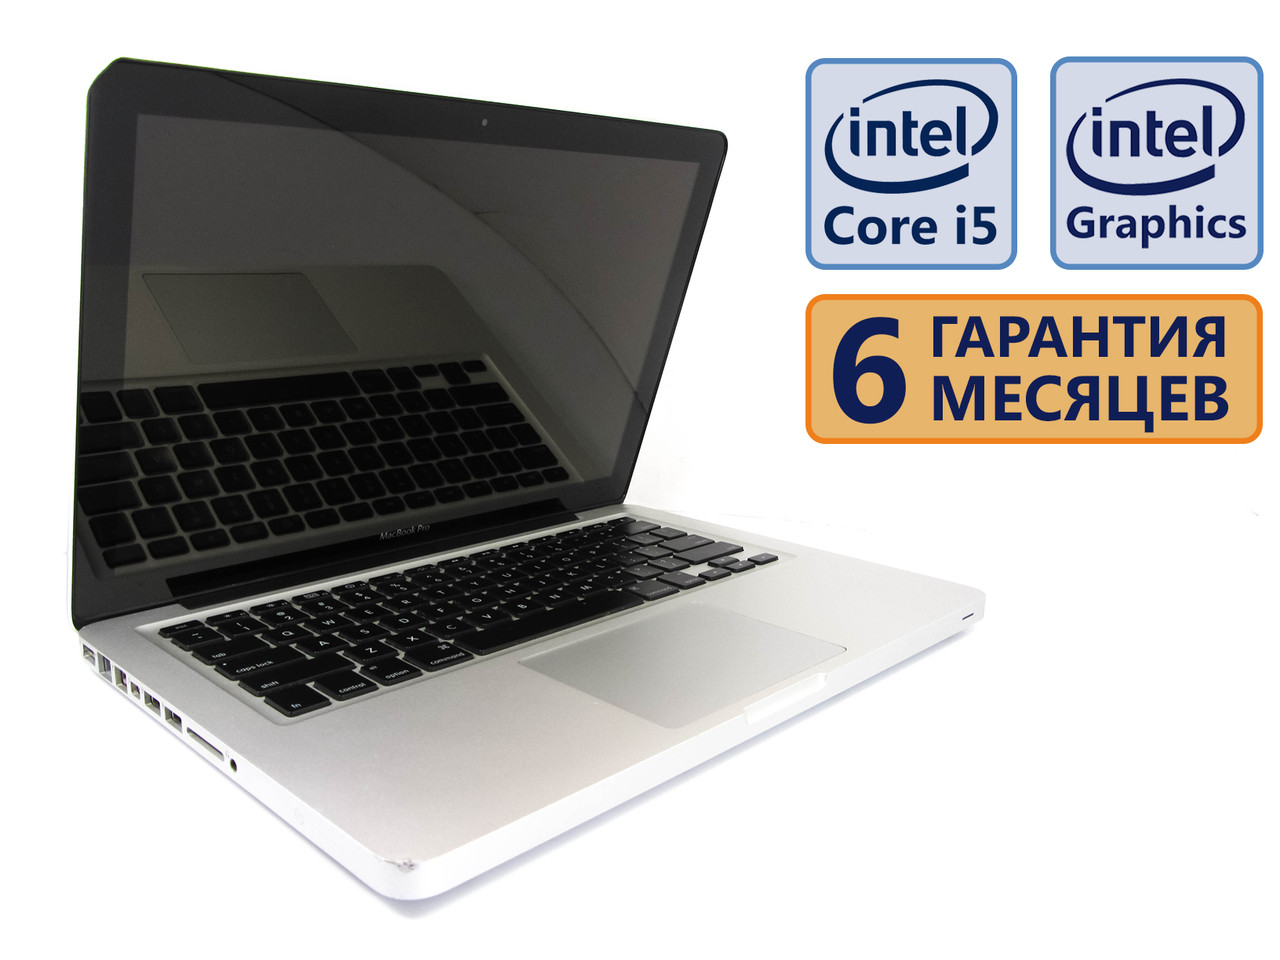 Ноутбук Apple Pro A1278 2010 13.3 (1280x800) /Intel Core i5-2415M (2x max2.9GHz)/RAM 8Gb /SSD 240Gb/АКБ 3 ч. 20 мин. / Сост.8.5/10 БУ